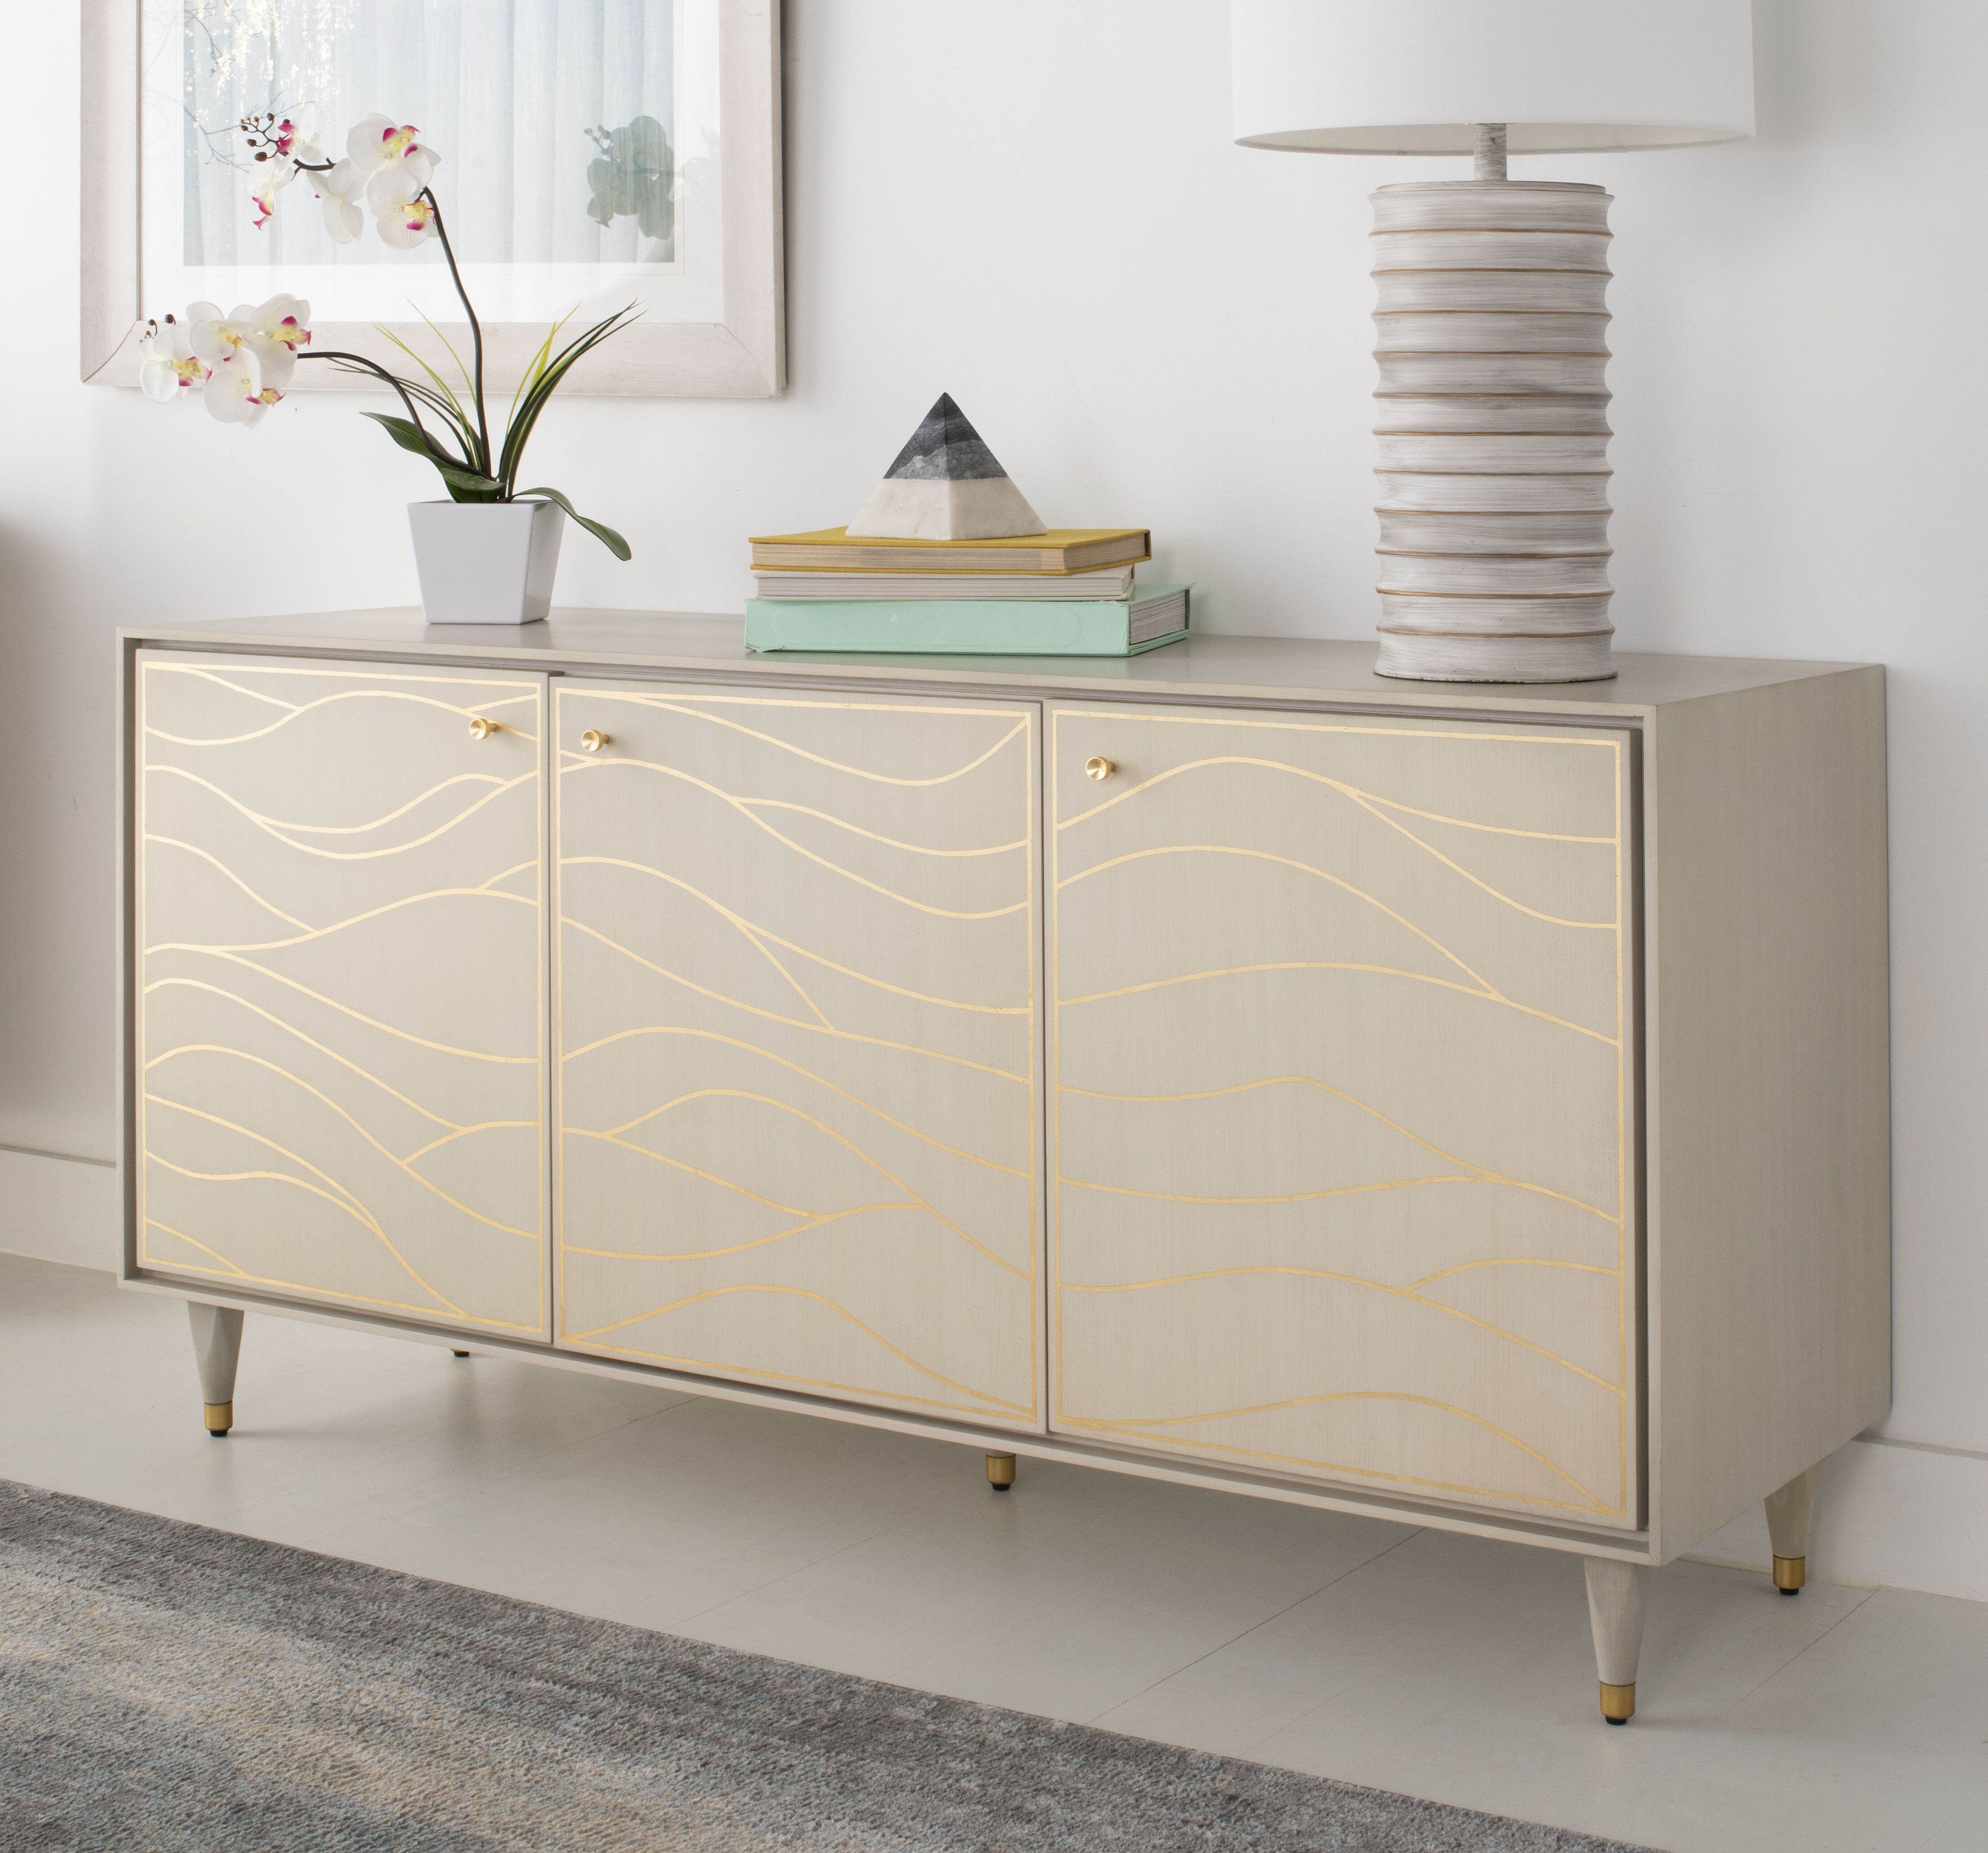 Kitchen & Dining Room Furniture Sale | Joss & Main For Cazenovia Charnley Sideboards (View 16 of 30)